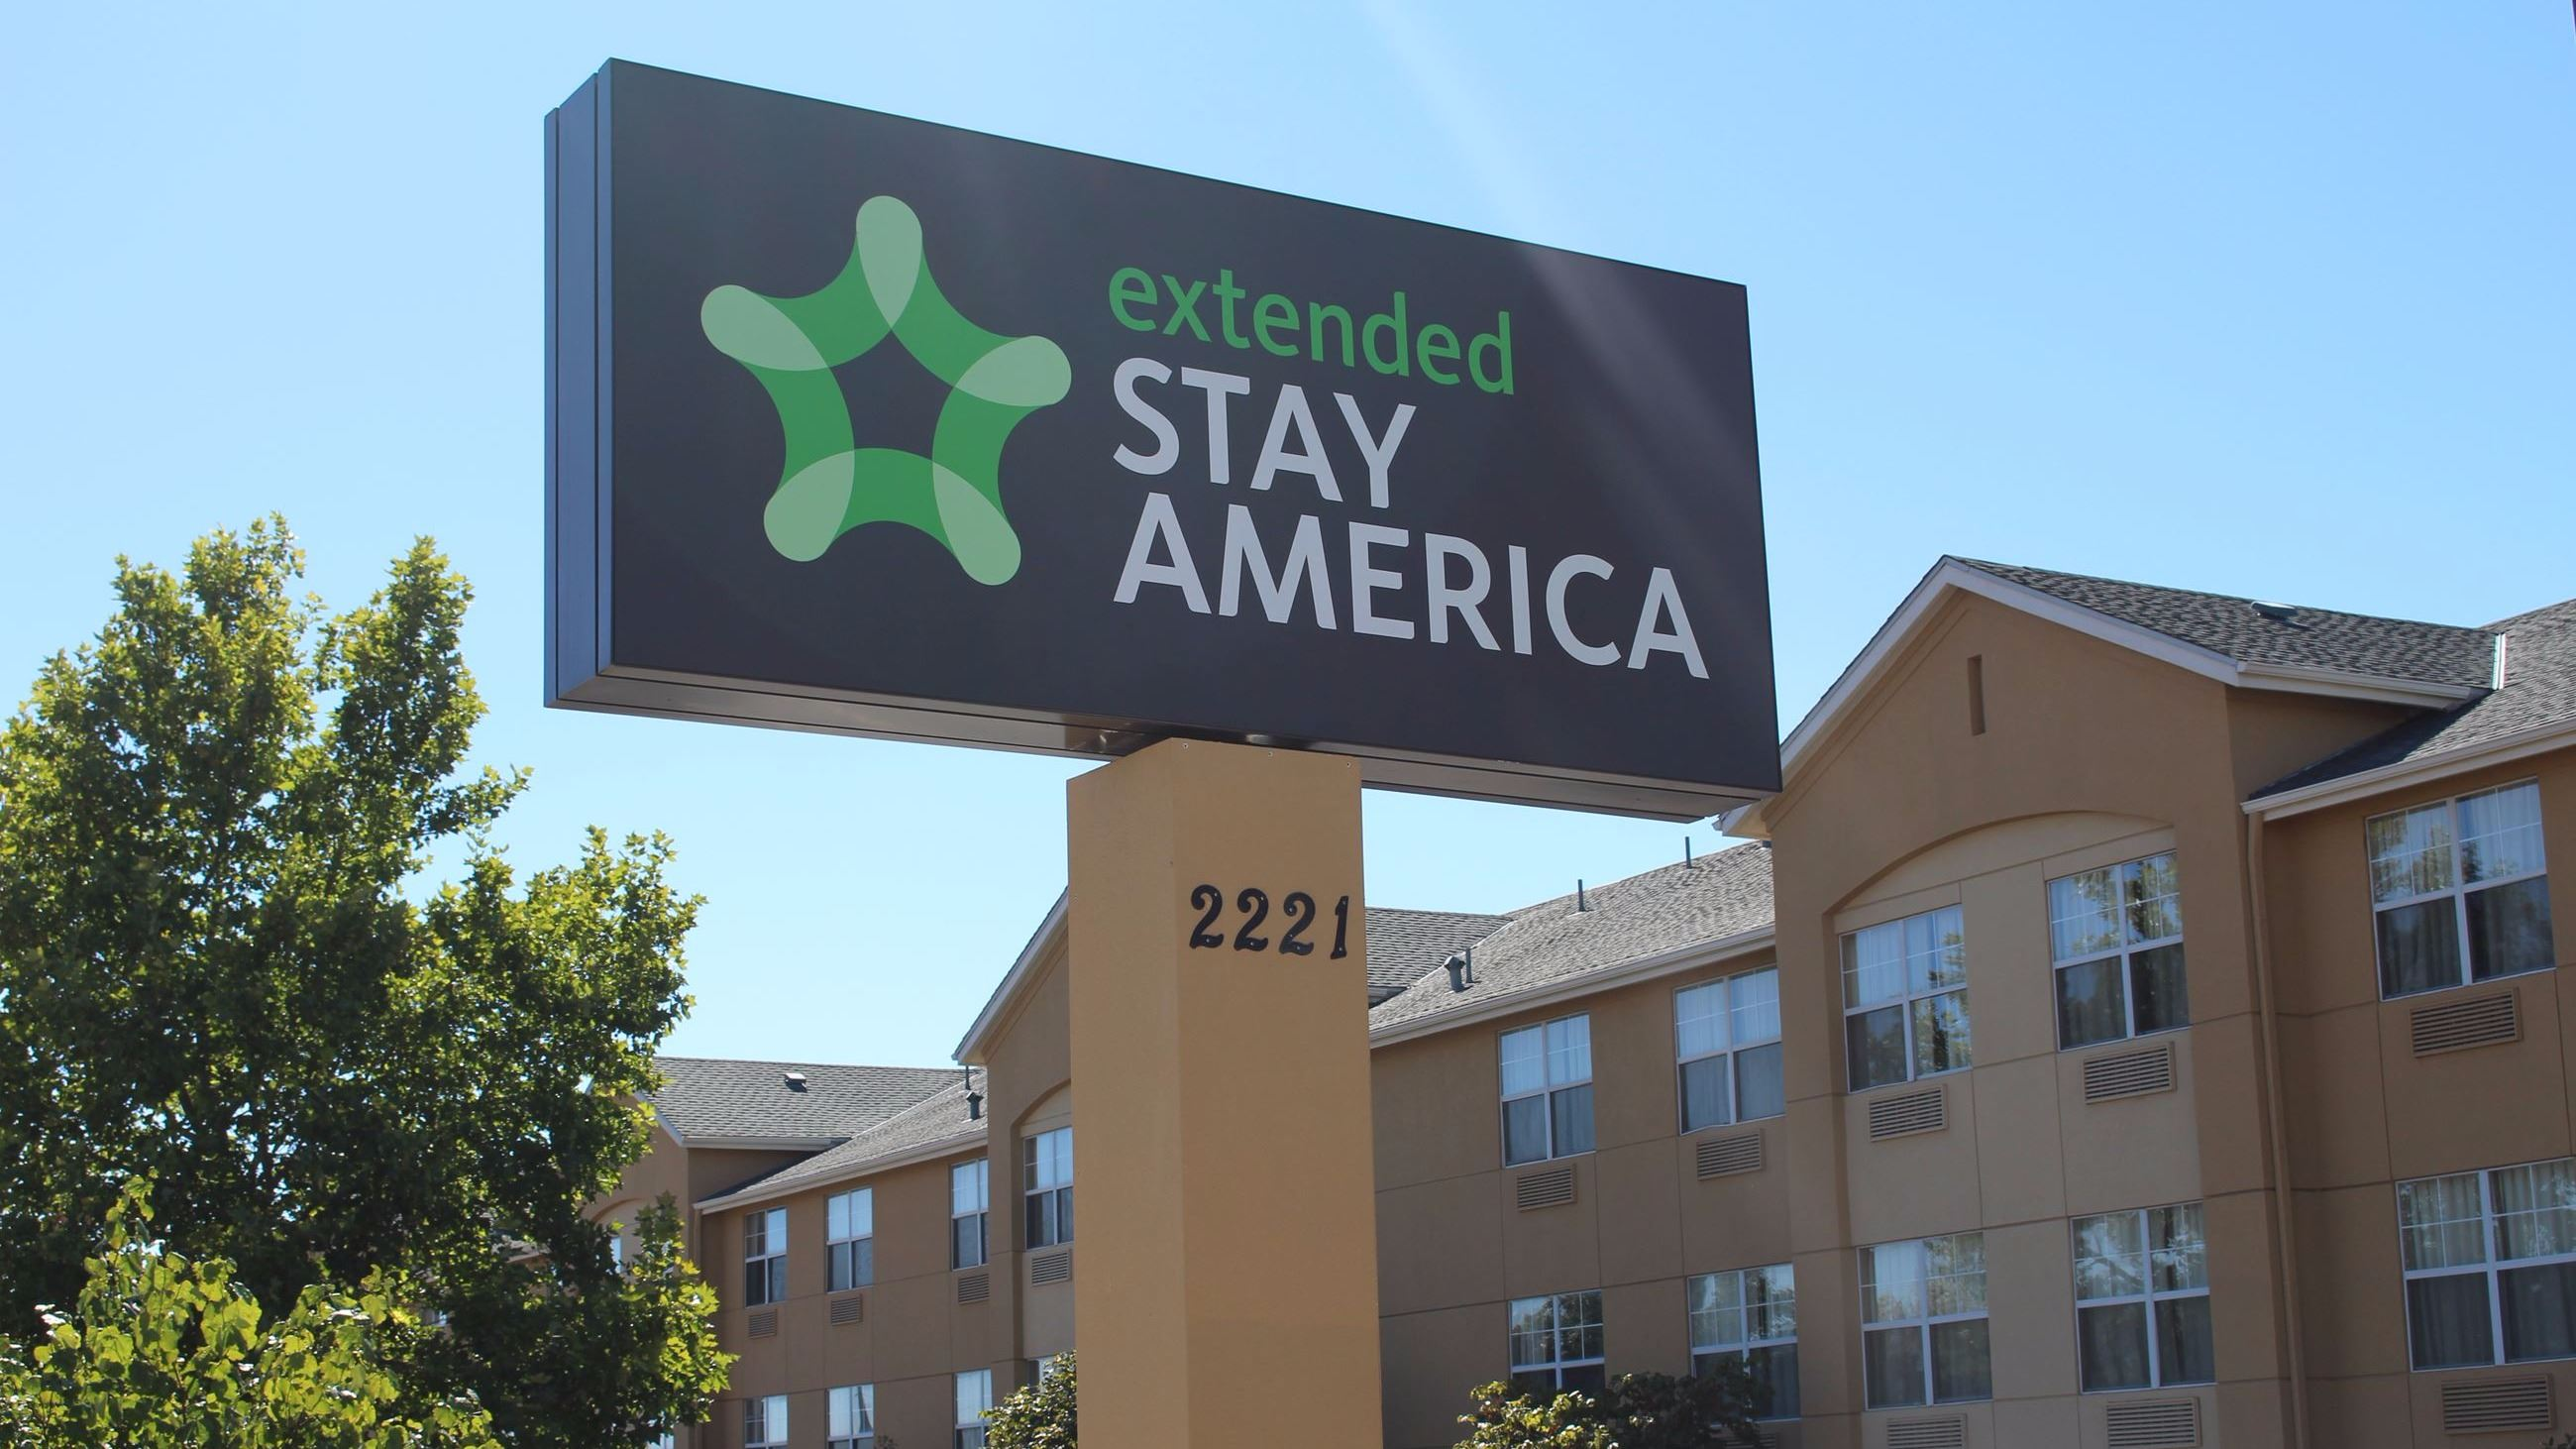 Extended Stay America - Rio Rancho Blvd